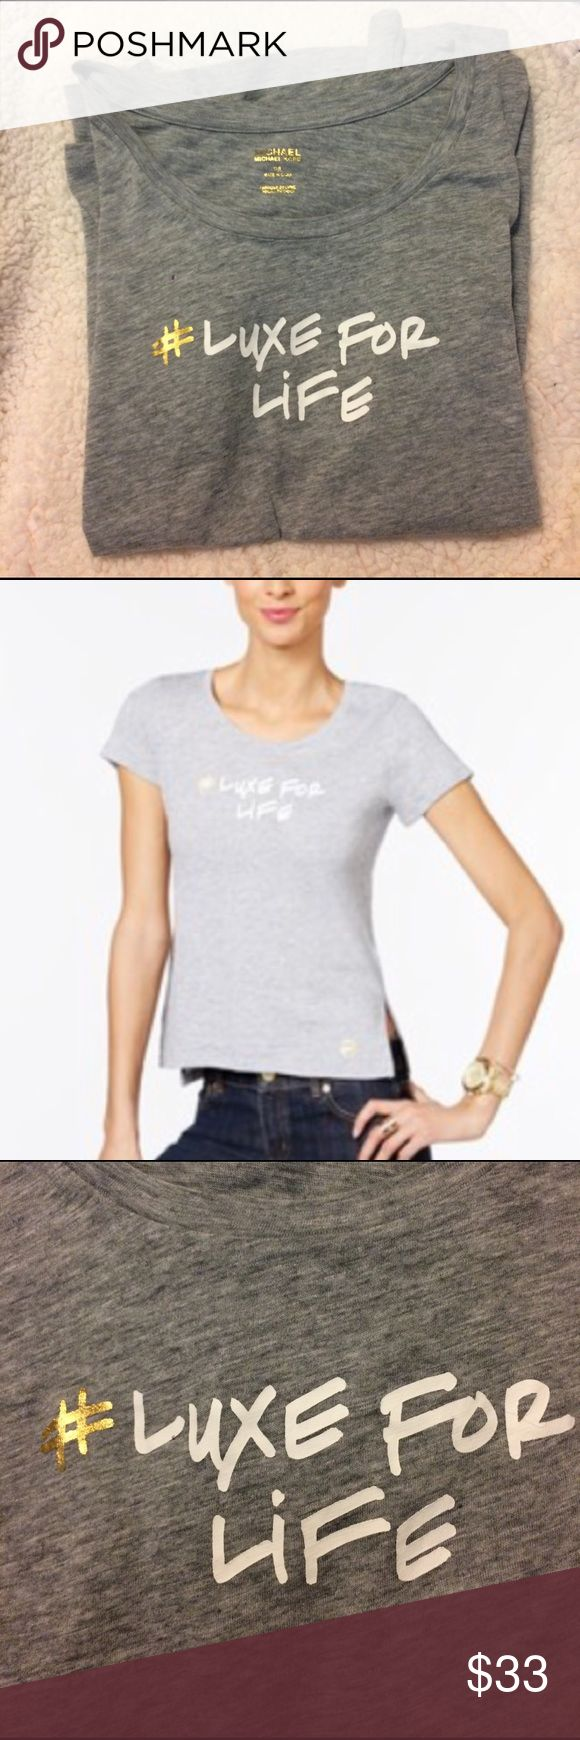 """Michael Kors Graphic T-shirt MICHAEL Michael Kors gray """"#Luxe For Life"""" Graphic T-shirt.  Light gray tee with gold and white graphics.  Scoop neckline, pullover tee, slits at side hems, sits at hip, 100% cotton. Shoulder to hem 23""""/24.5"""".            🚫trades MICHAEL Michael Kors Tops Tees - Short Sleeve"""